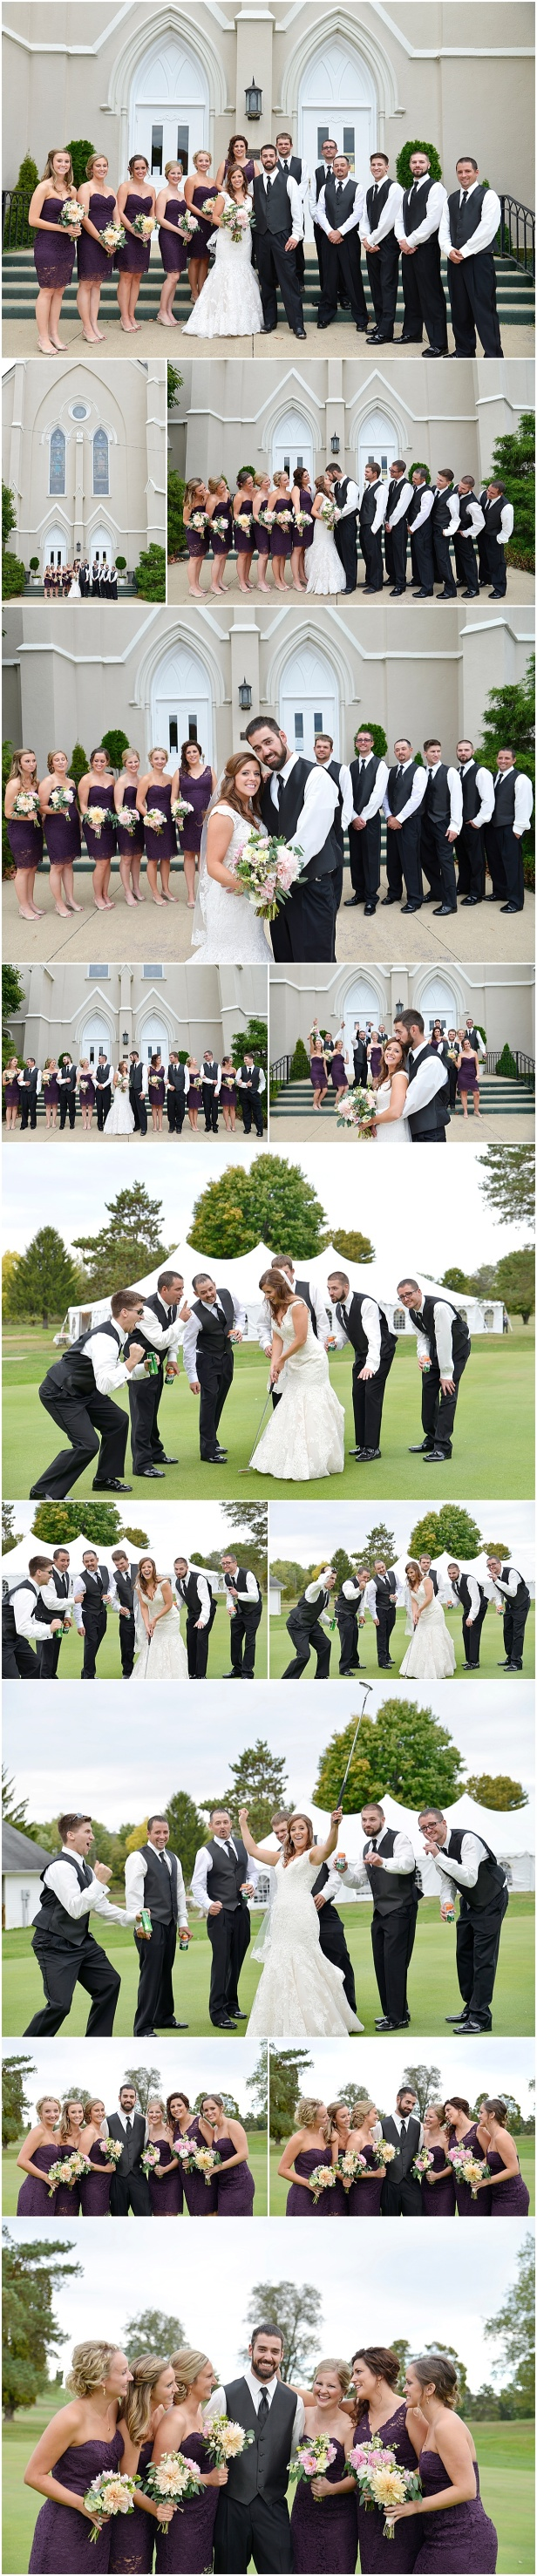 5_Hiawatha Golf Course Mount Vernon Ohio Wedding